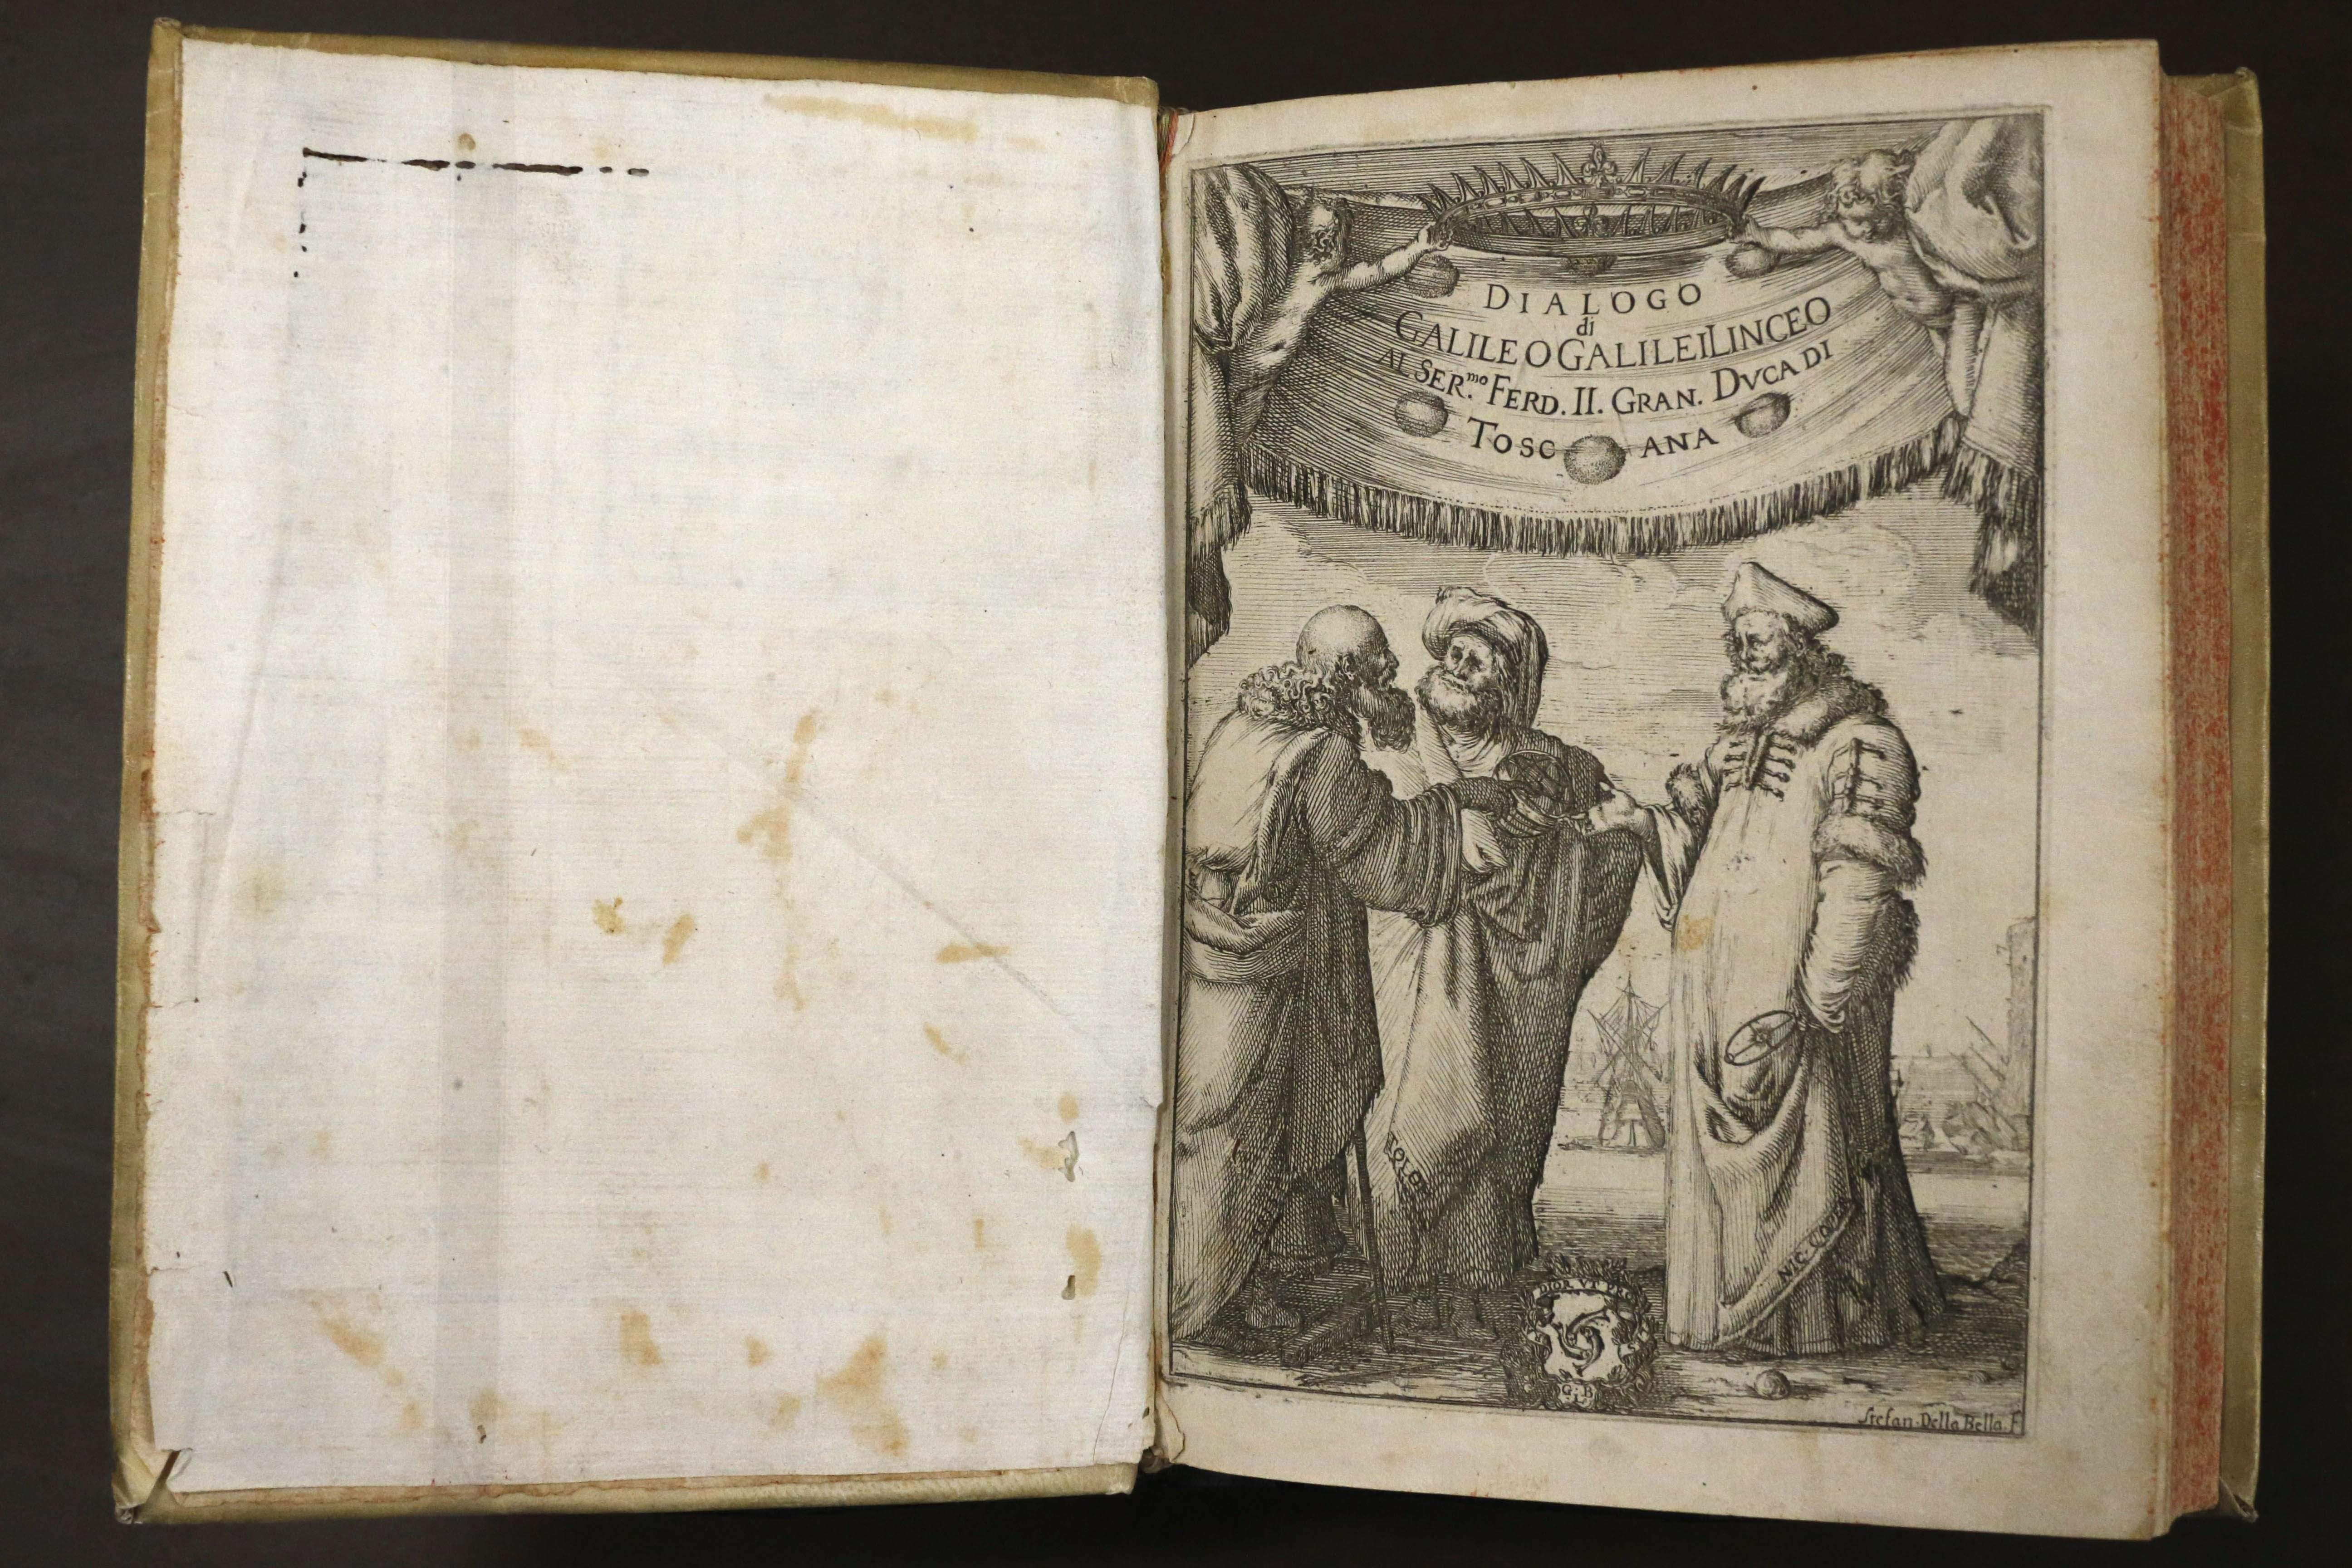 'Dialogo die Massimi Sistemi del Mondo' by Galileo, printed in 1632, which is featured in the new exhibition 'Milestones of Science' at the Buffalo and Erie County Public Library, Wednesday, Nov. 18, 2015.  (Derek Gee/Buffalo News)